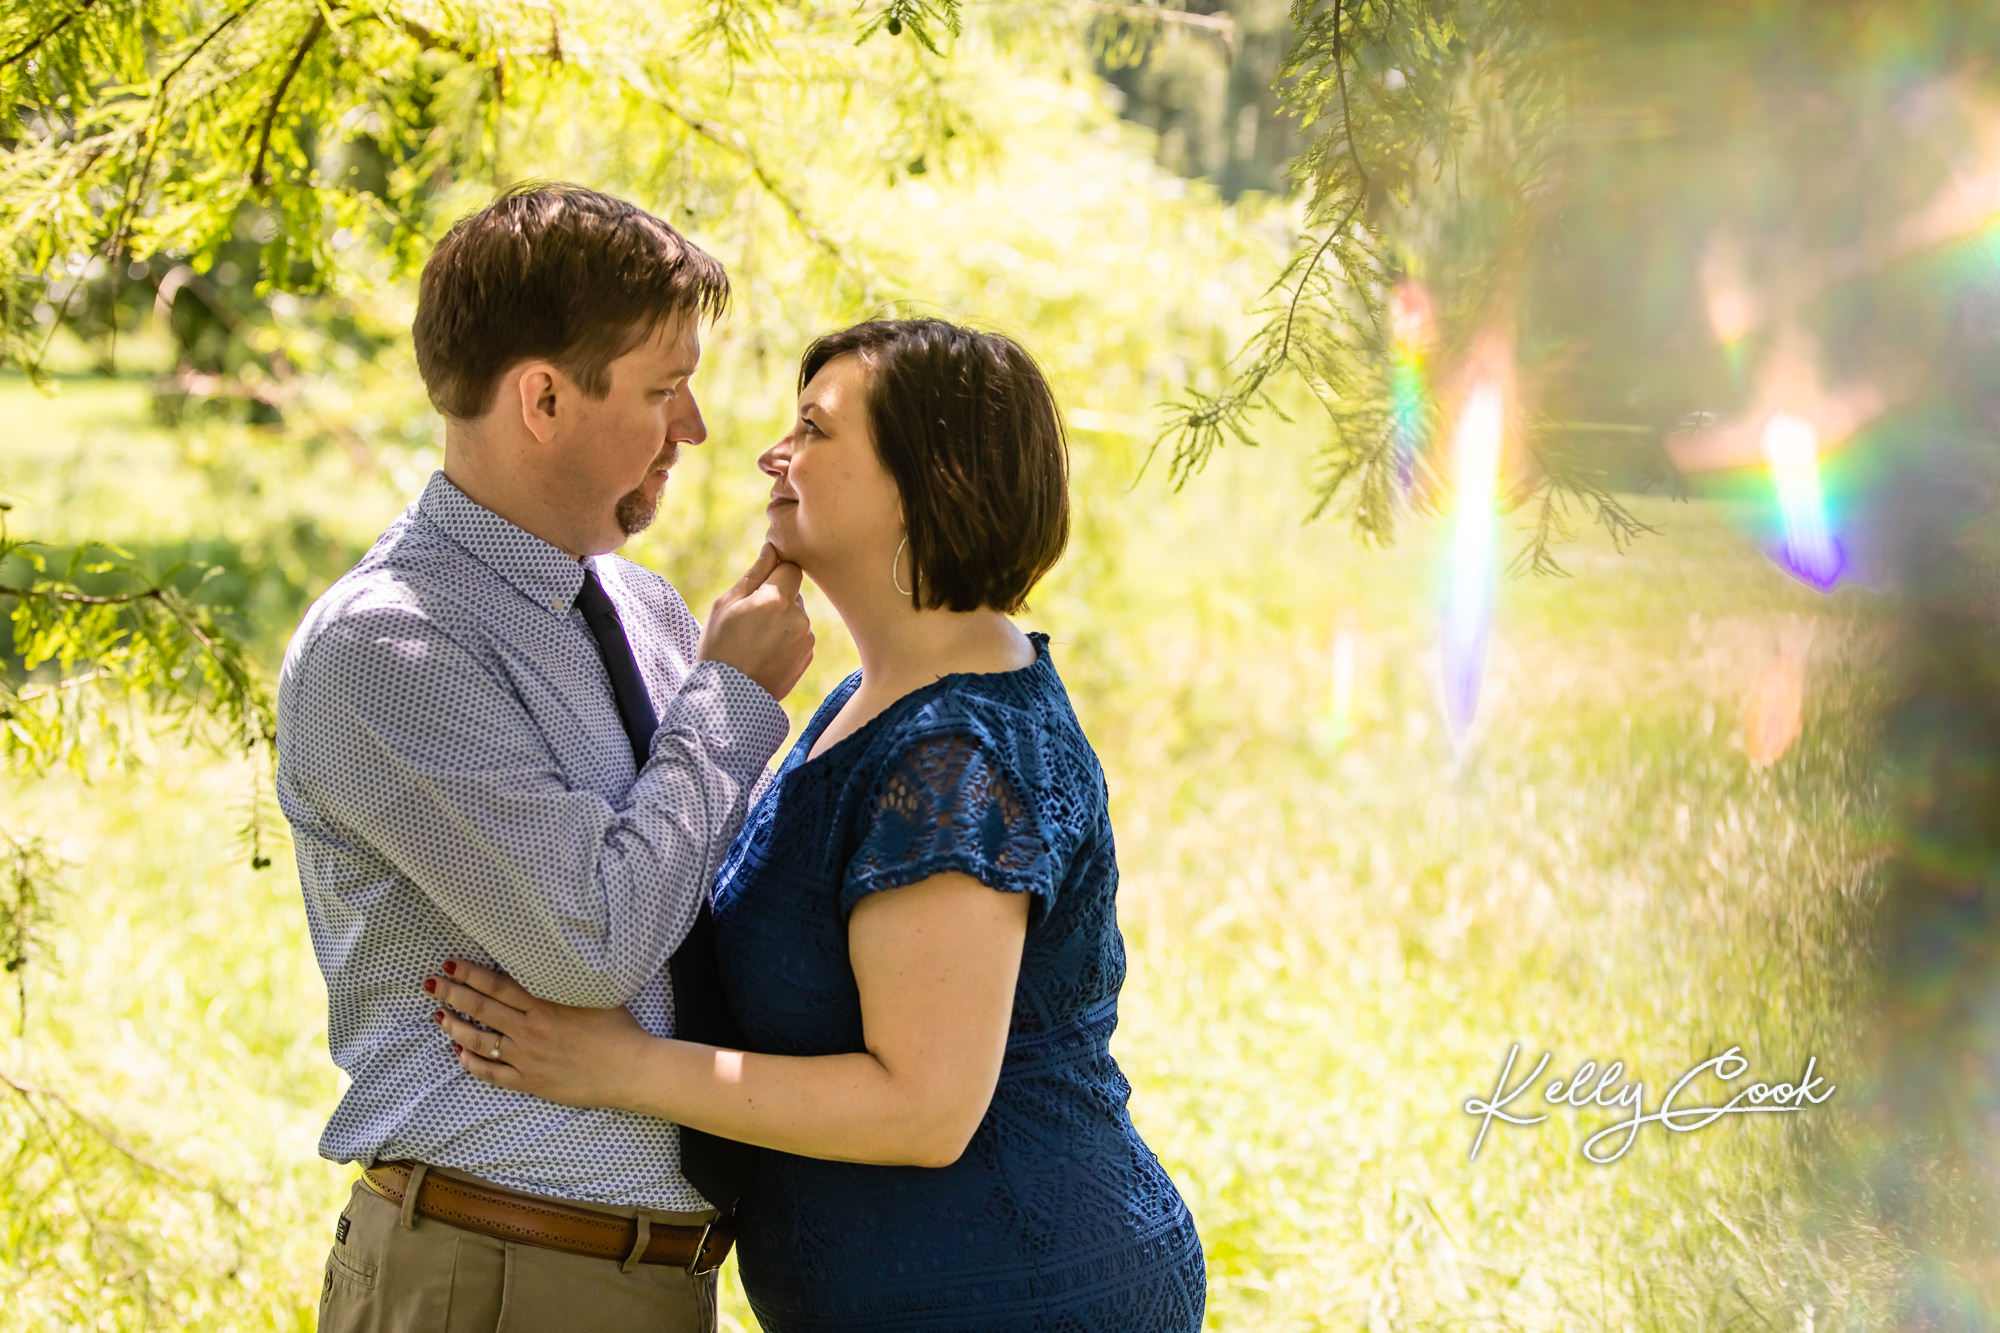 Dreamy St. Louis Engagement photo of an engaged couple embracing in a field in Francis Park